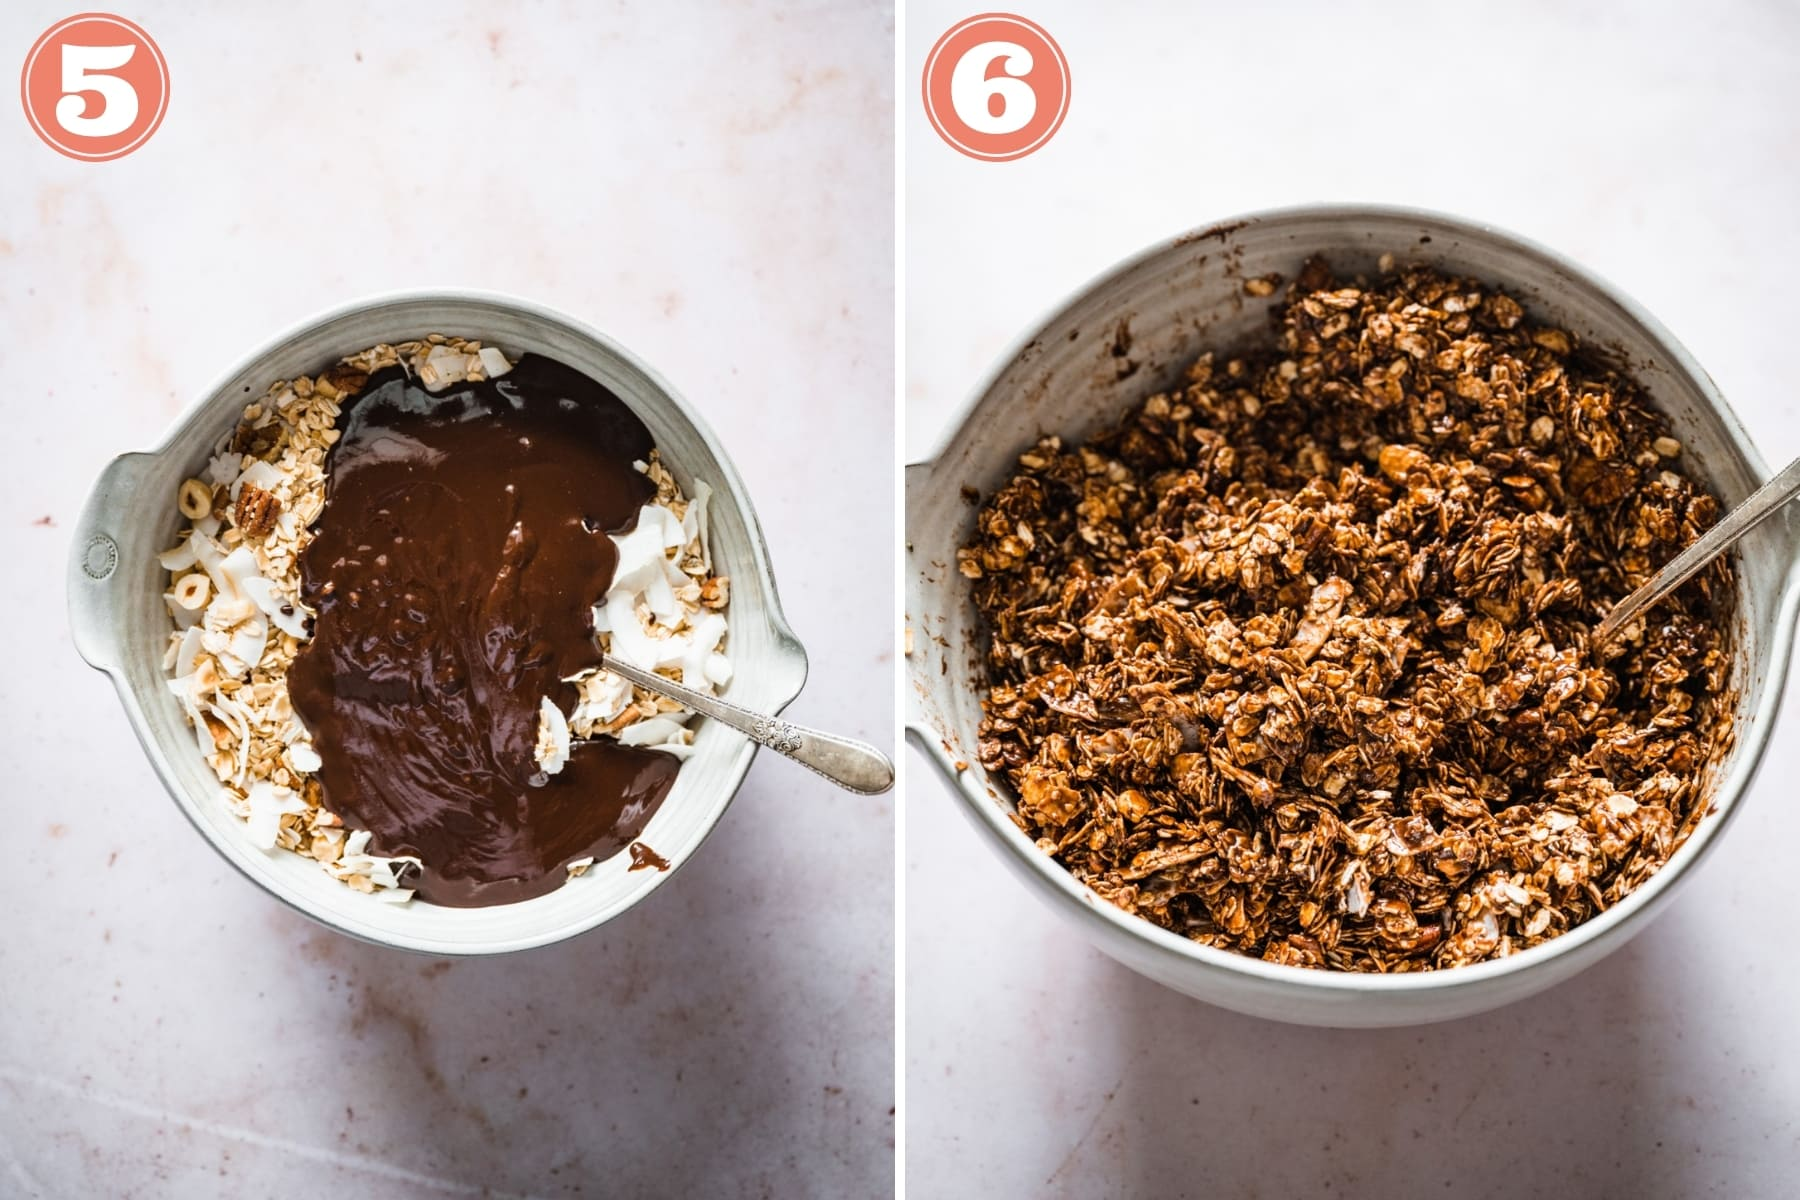 before and after stirring together wet and dry ingredients for chocolate hazelnut granola.